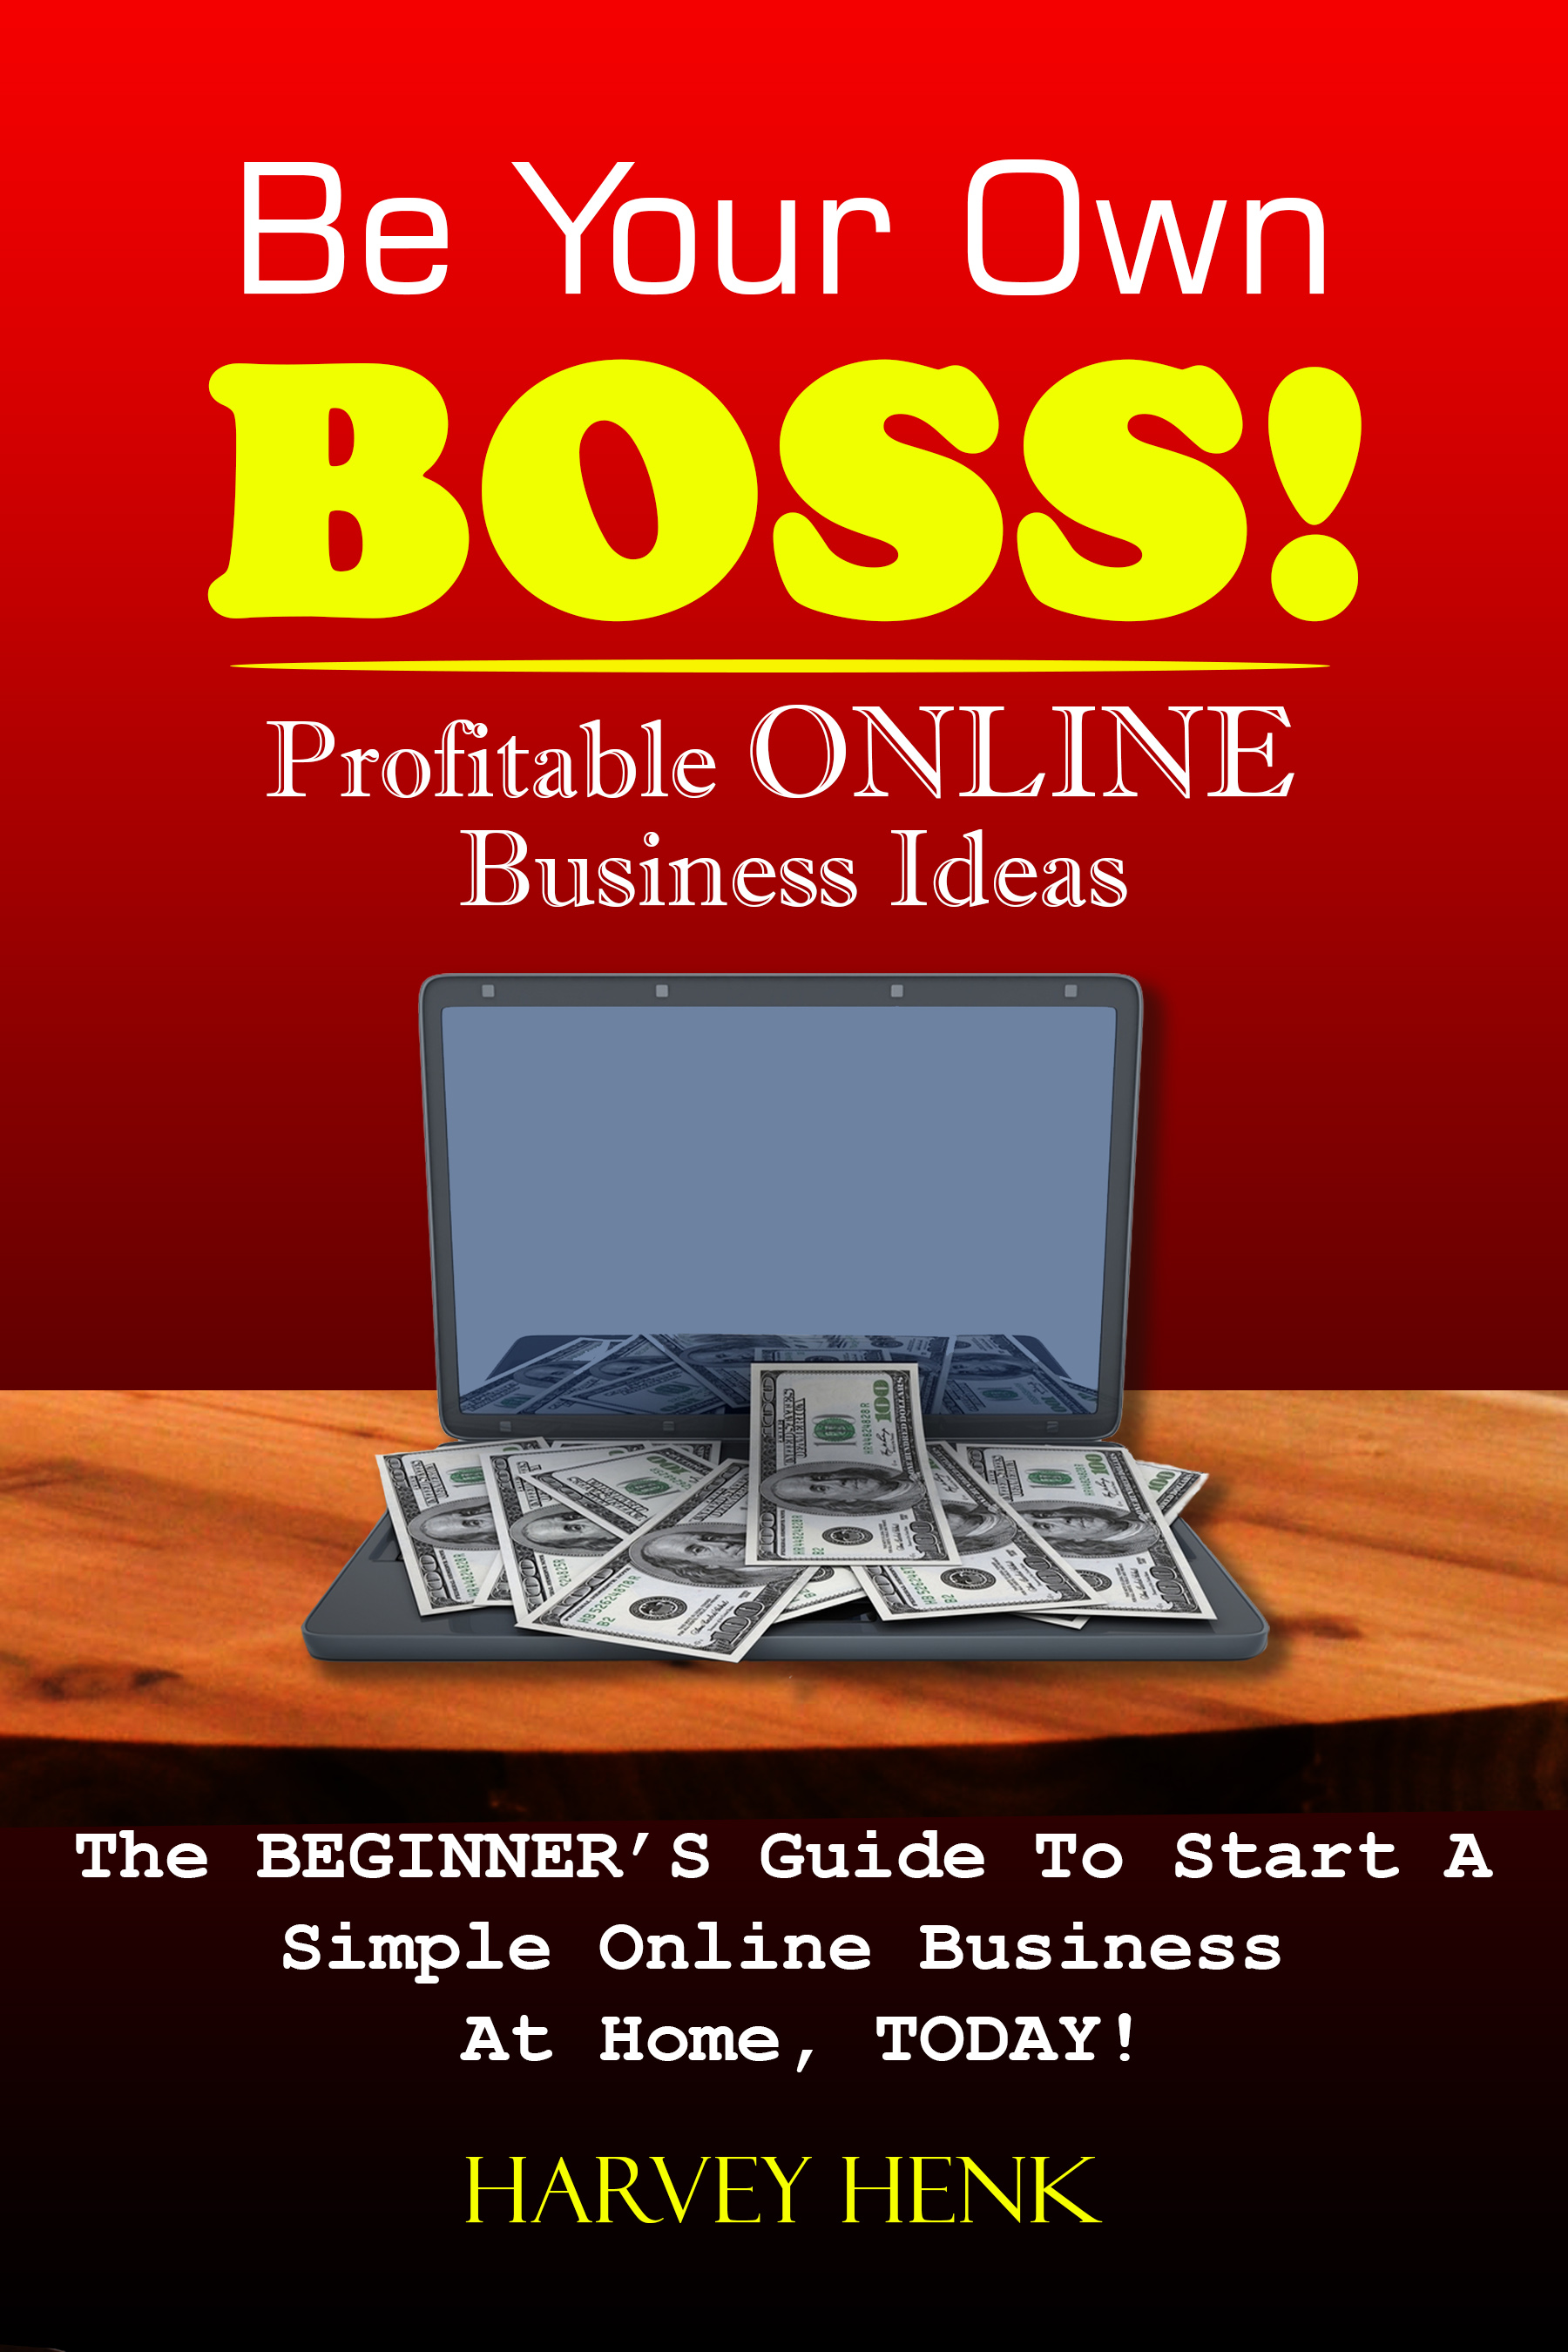 Be-Your-Own-Boss-Book-Cover.jpg